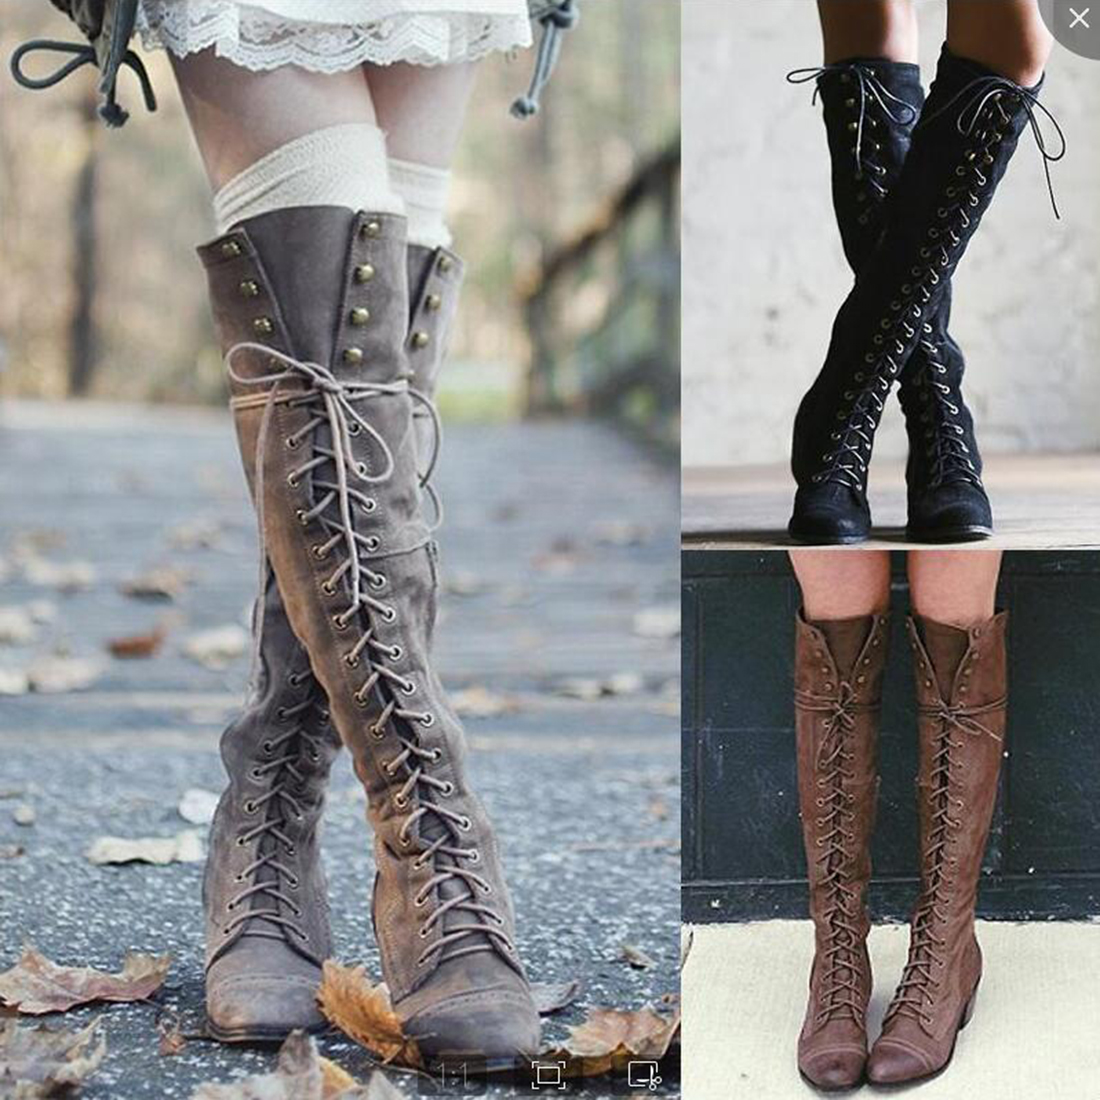 2018 Fashion Runway Crystal Stretch Fabric Sock Boots Pointy Toe Over-the-Knee Heel Thigh High Pointed Toe Woman Boot knsvvli over knee boots woman mixed color belt buckle stretch knit sock long boots sexy pointy toe stiletto heel thigh high boot